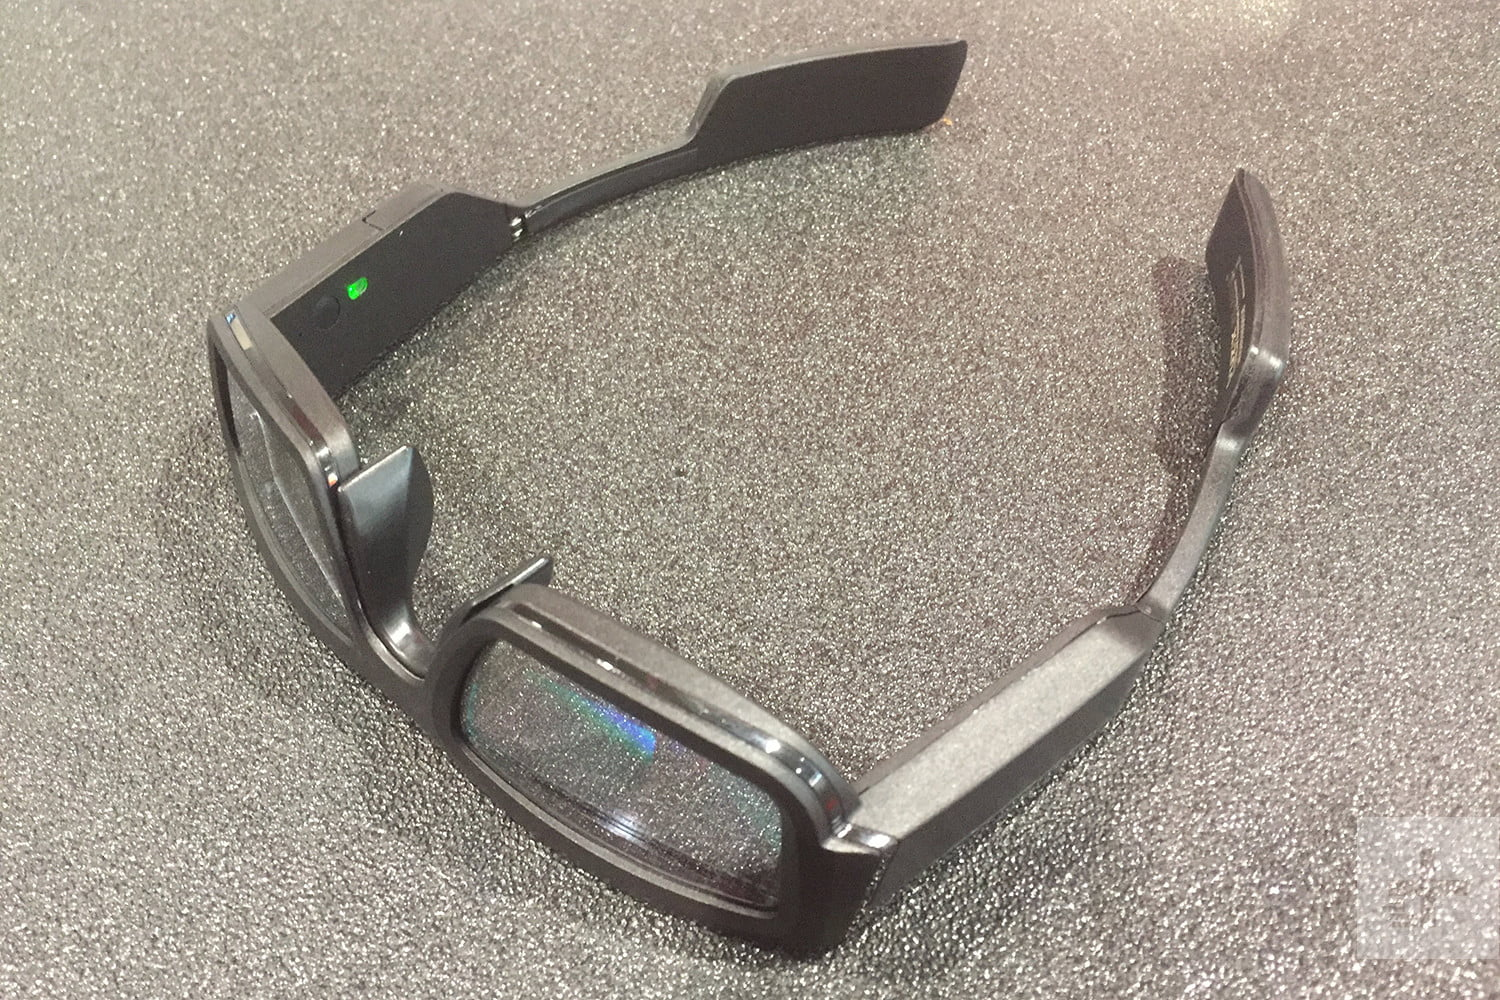 267cfe0f7b4 Hands On With Vuzix Blade Smartglasses at CES 2018